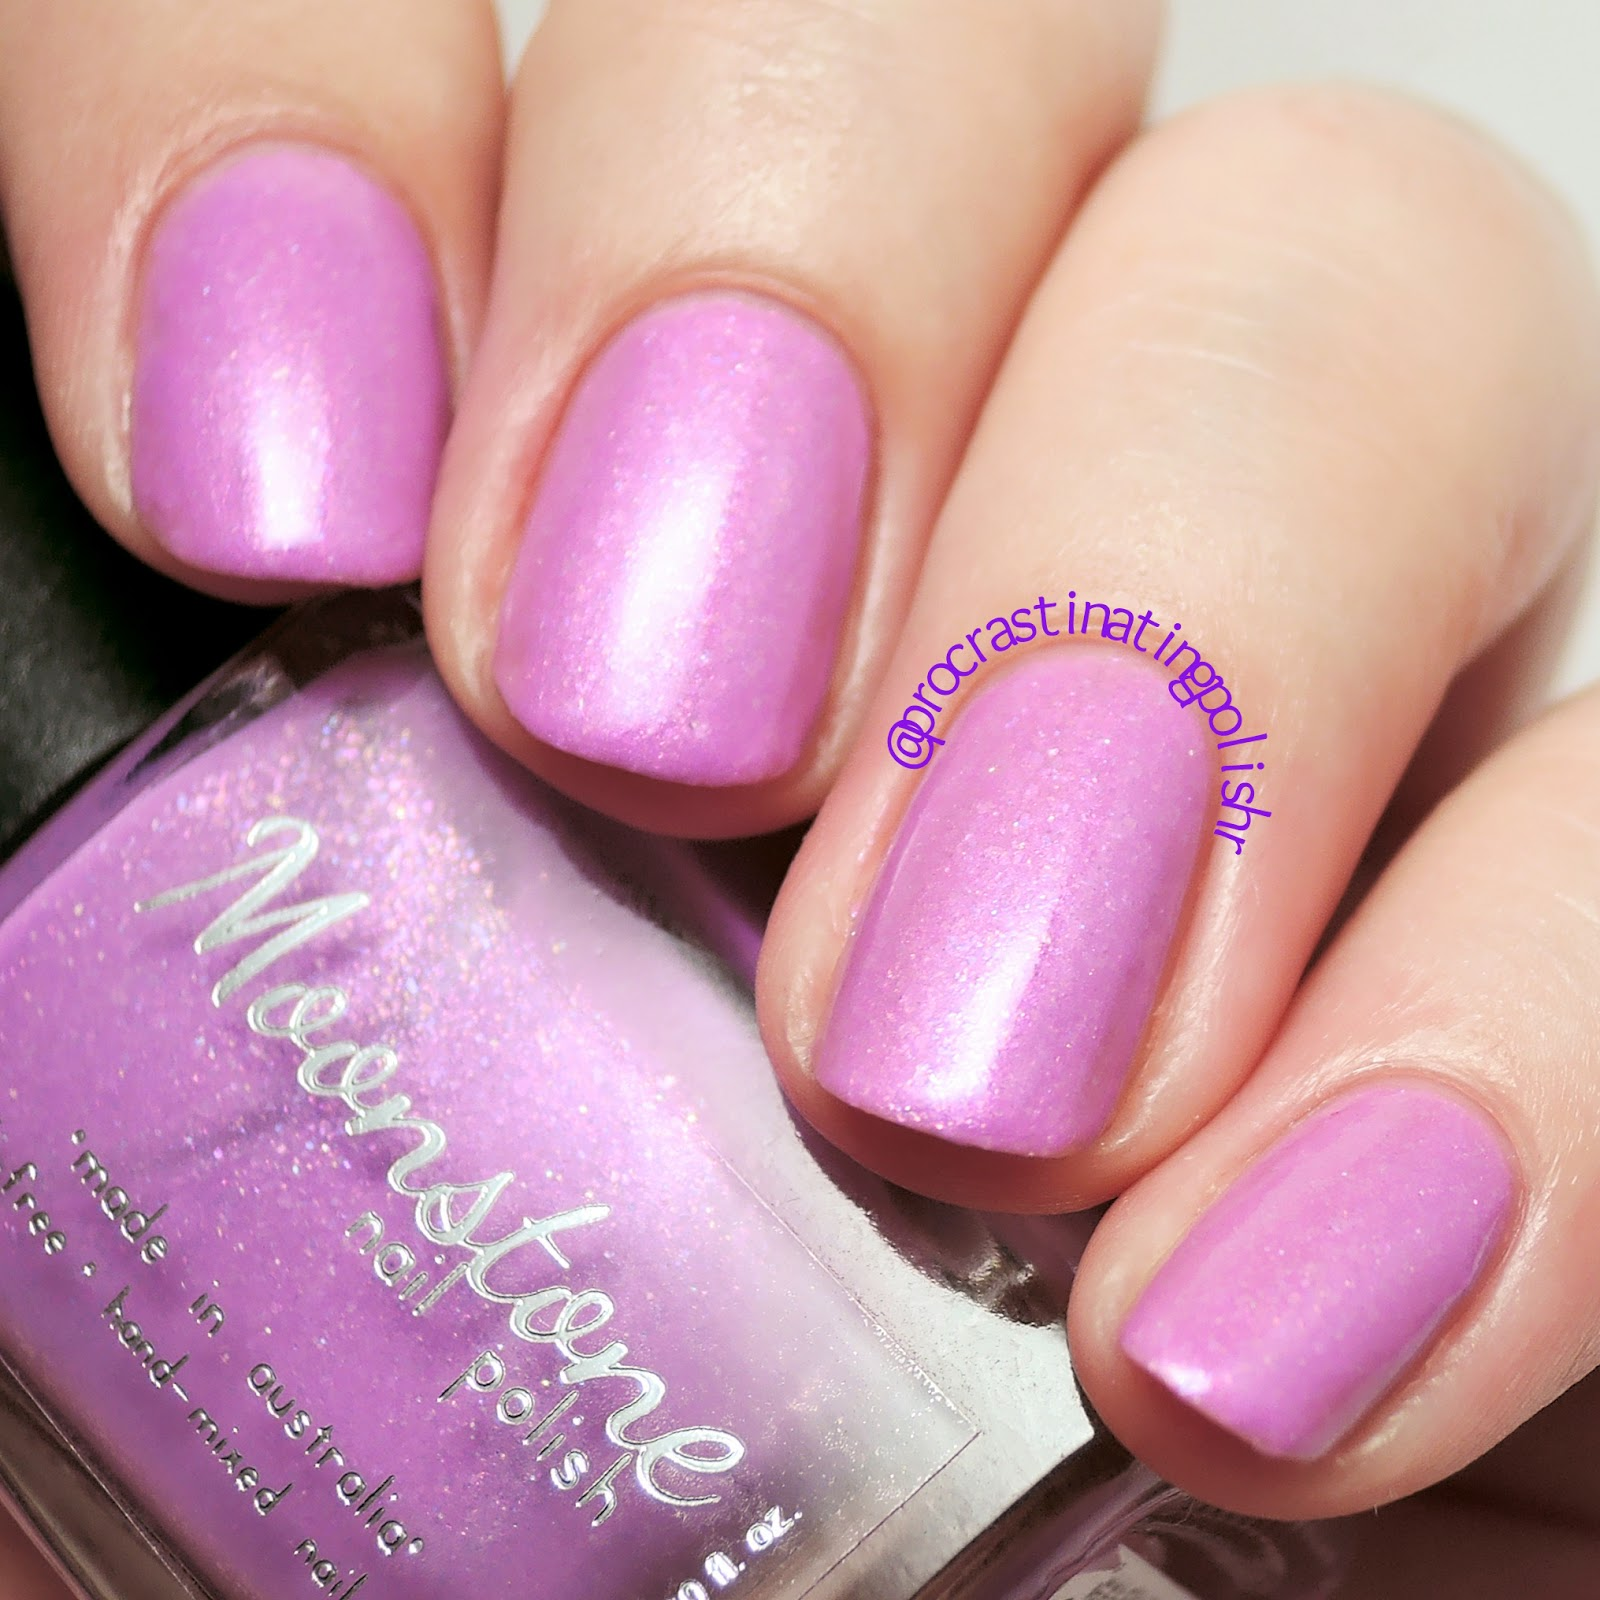 Moonstone Nail Polish - Nymphadora | Wicked Witches collection